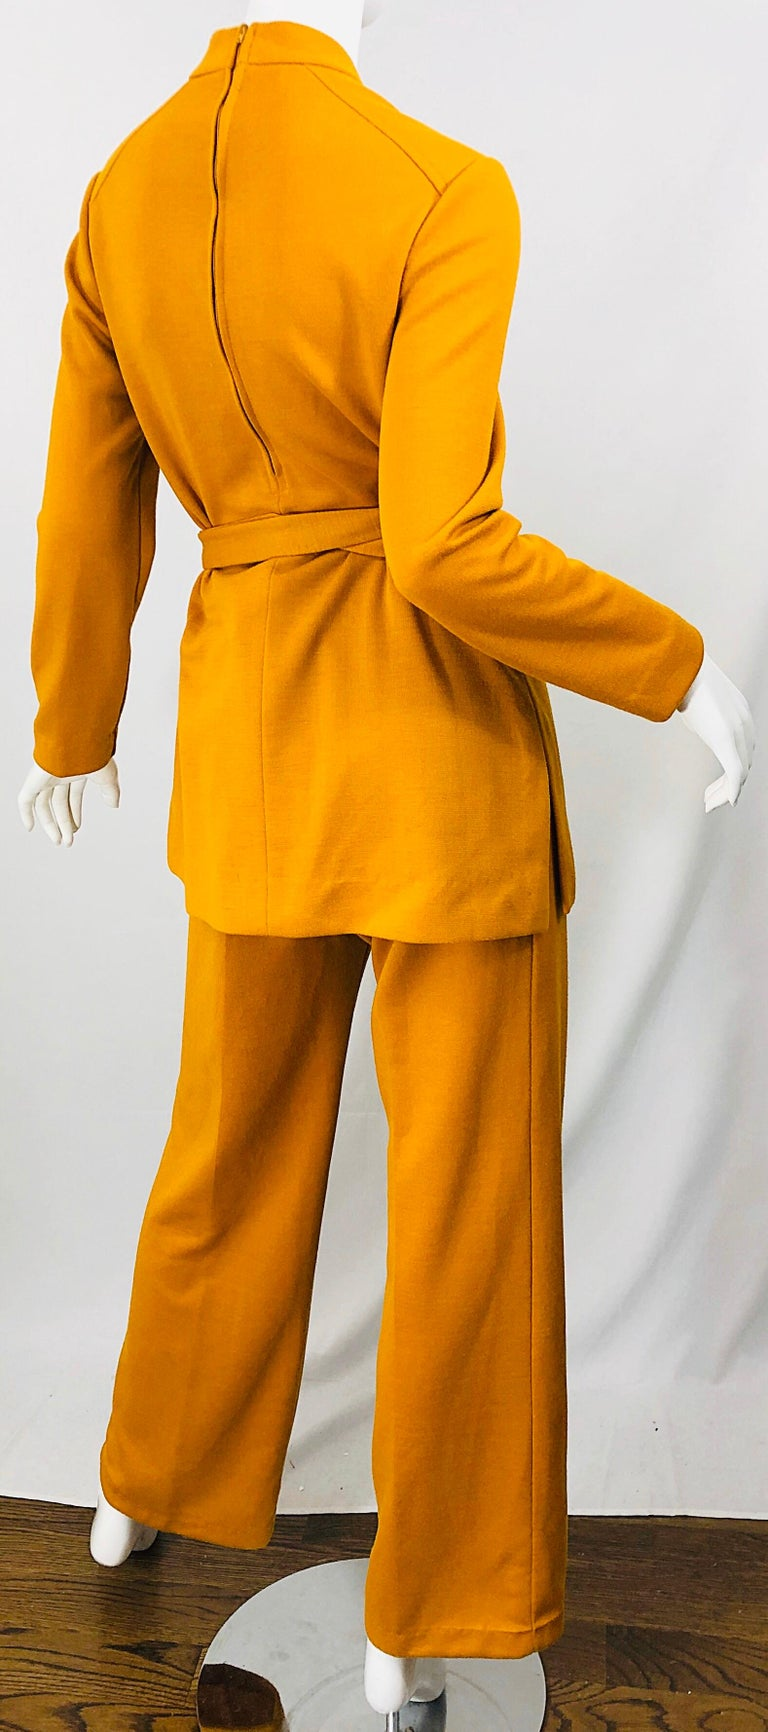 1970s Marigold Mustard Yellow Four Piece Vintage 70s Knit Shirt + Pants + Belt For Sale 11